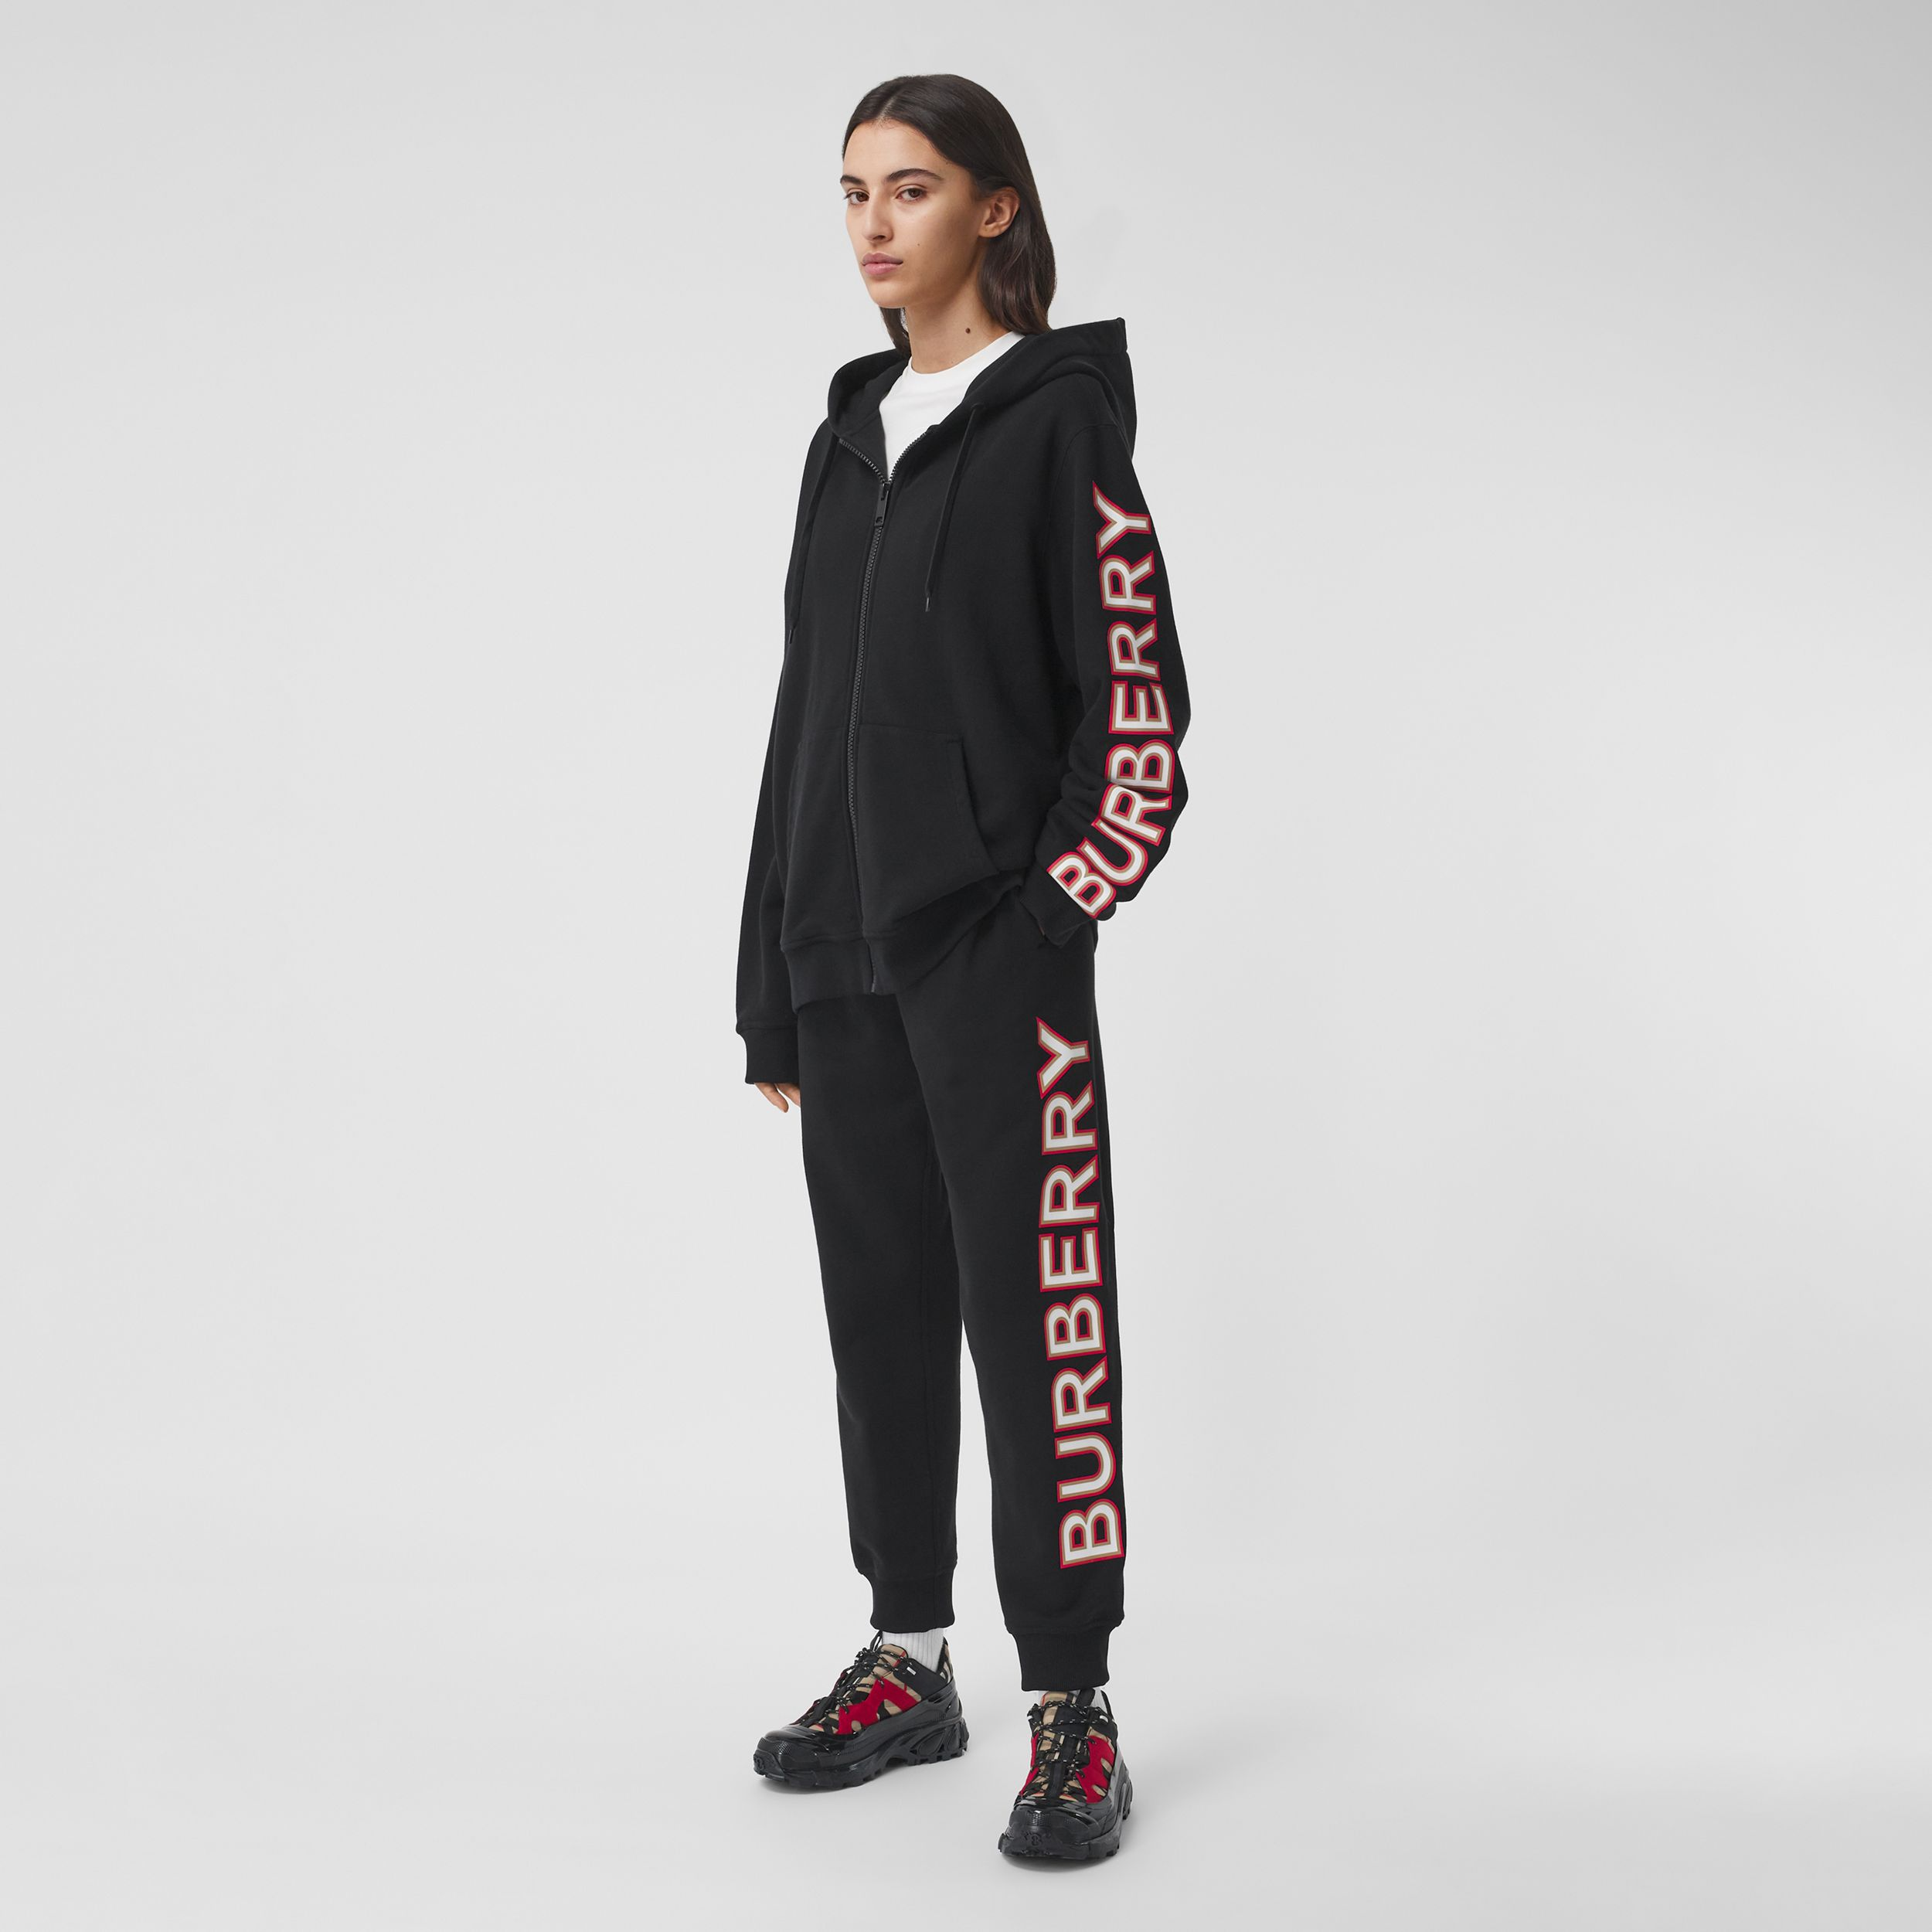 Logo Print Cotton Oversized Hooded Top in Black - Women | Burberry - 1